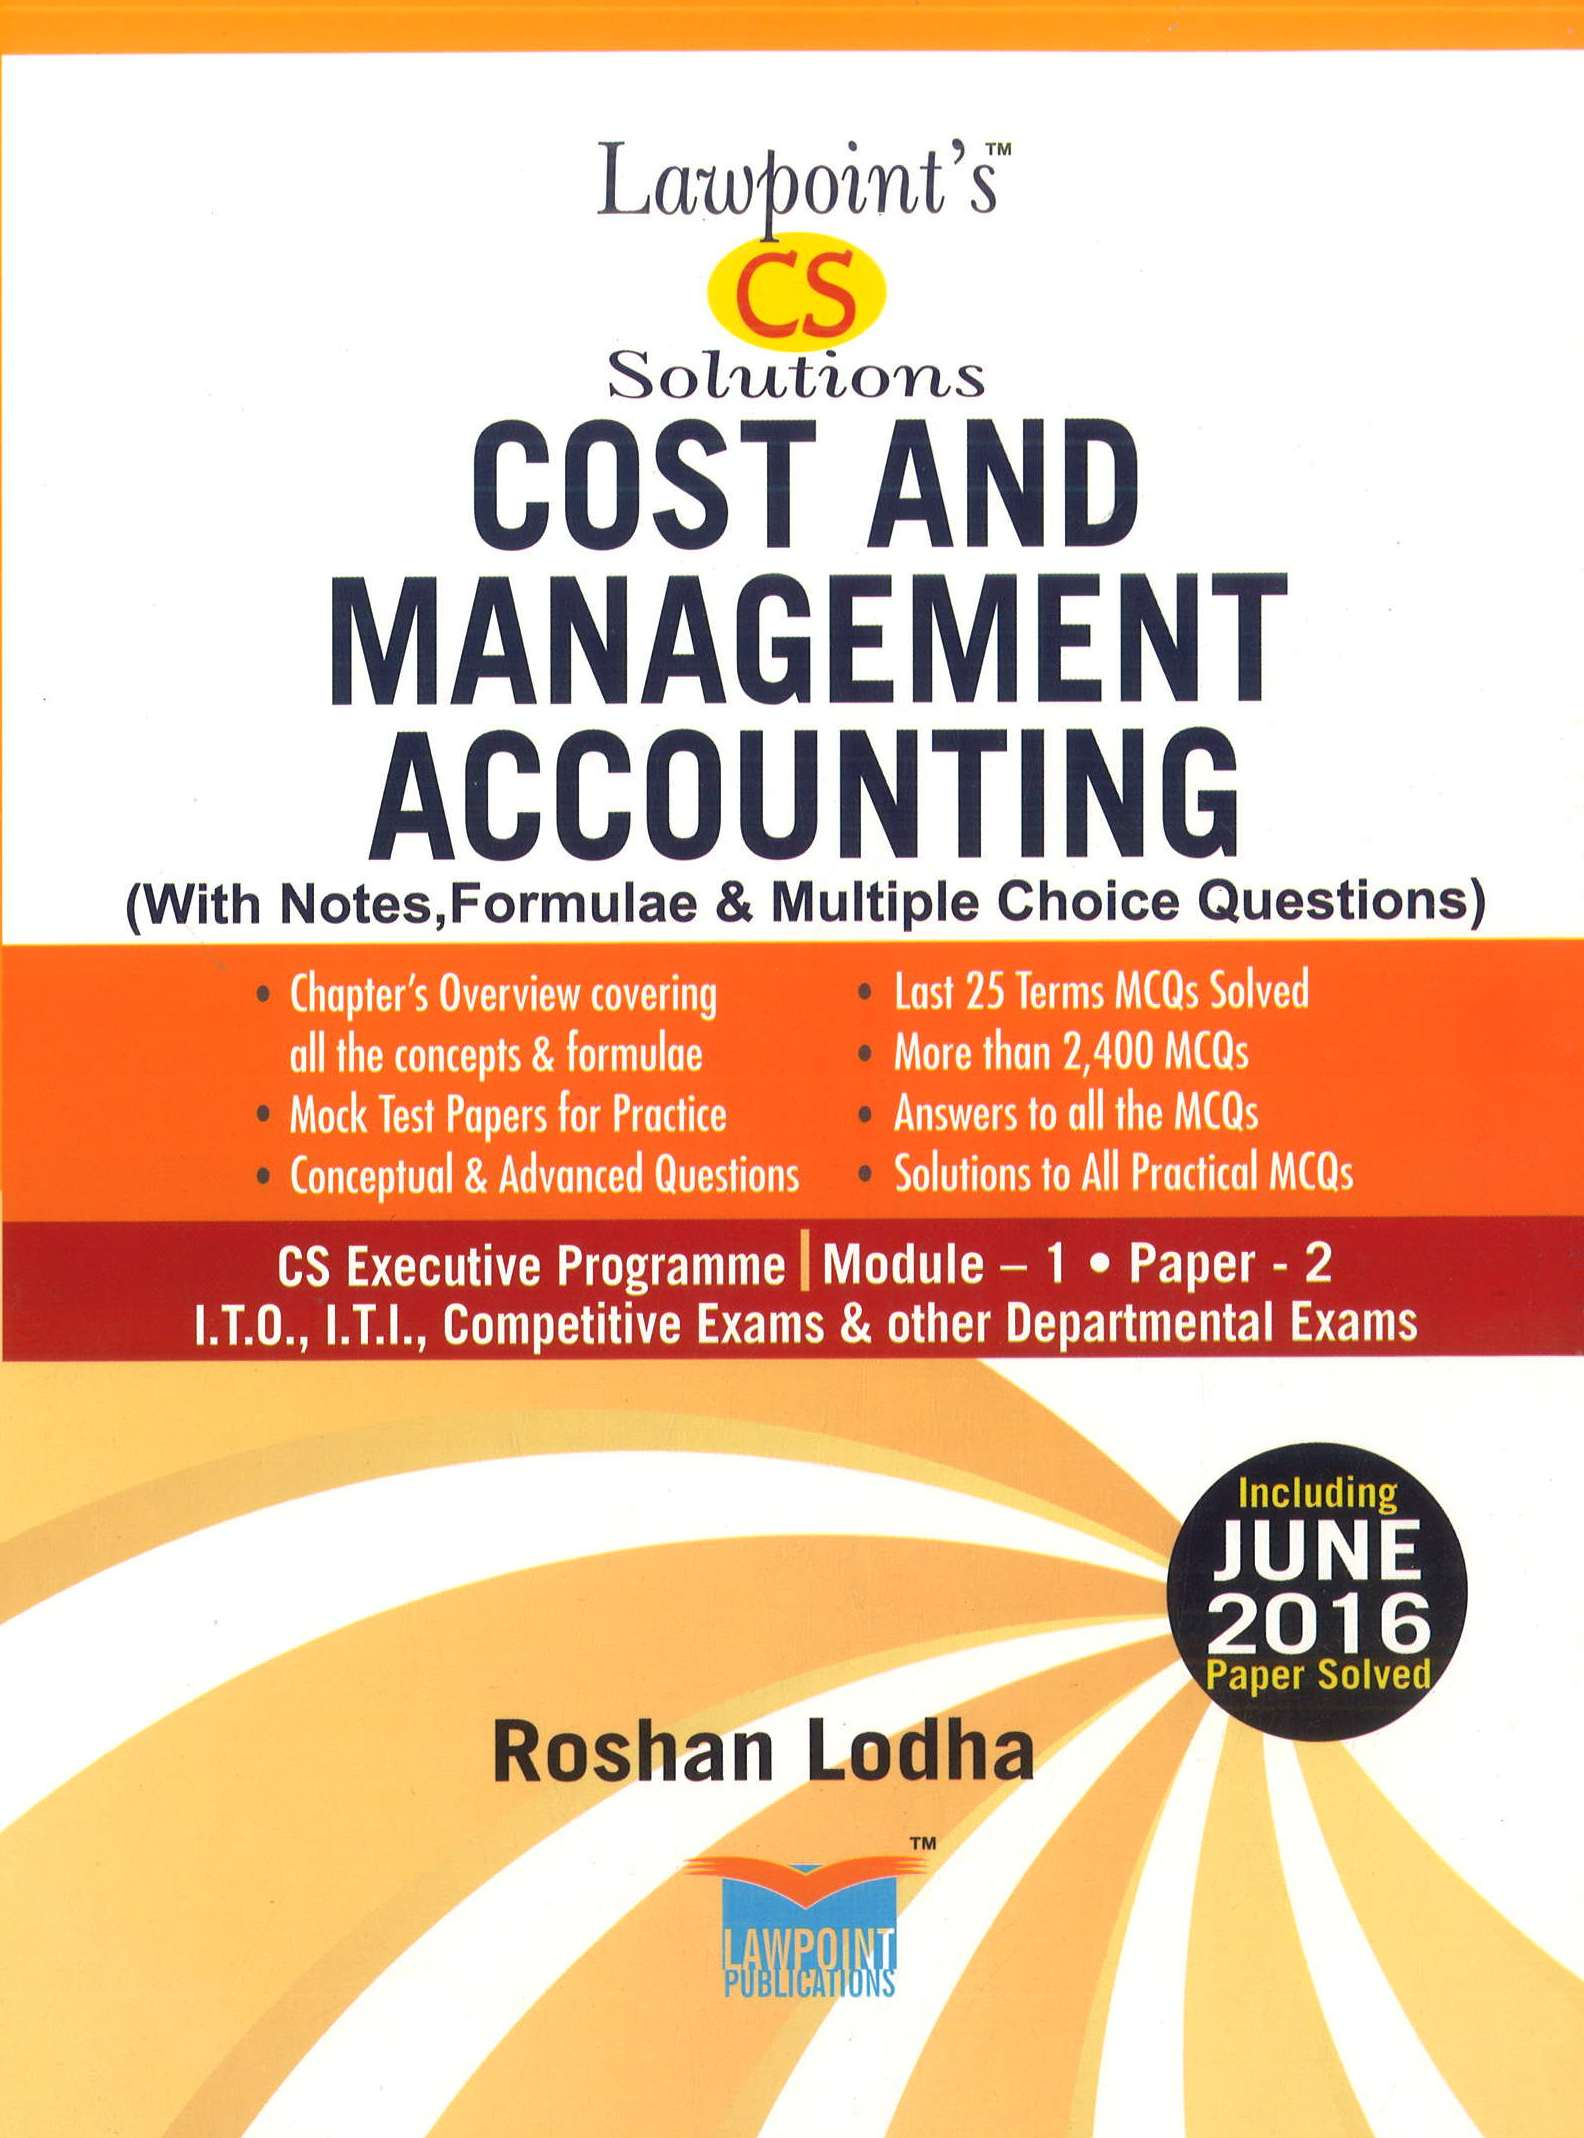 Lawpoint CS Solution Cost and Management Accounting (With Notes, Formulae & Multiple Choice Questions) for CS Executive Programme Module-1 Paper-2 by Roshan Lodha (Lawpoint Publication) Edition 12th 2016